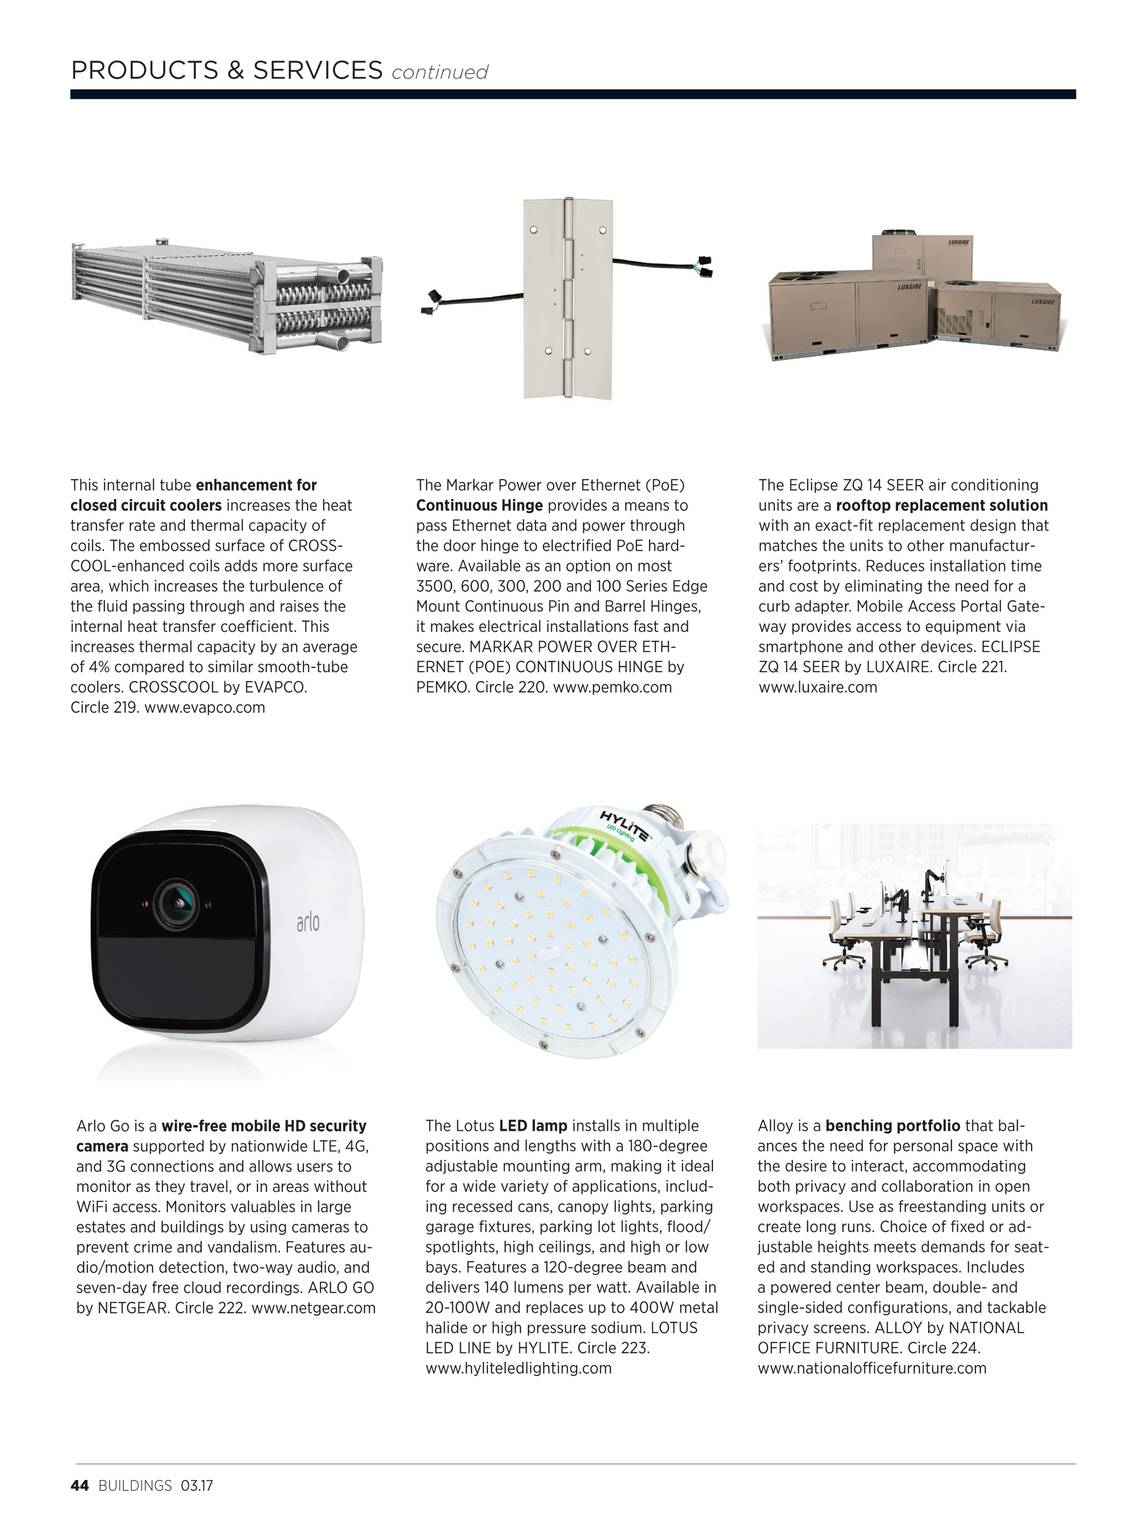 Buildings Magazine - March 2017 - page 45